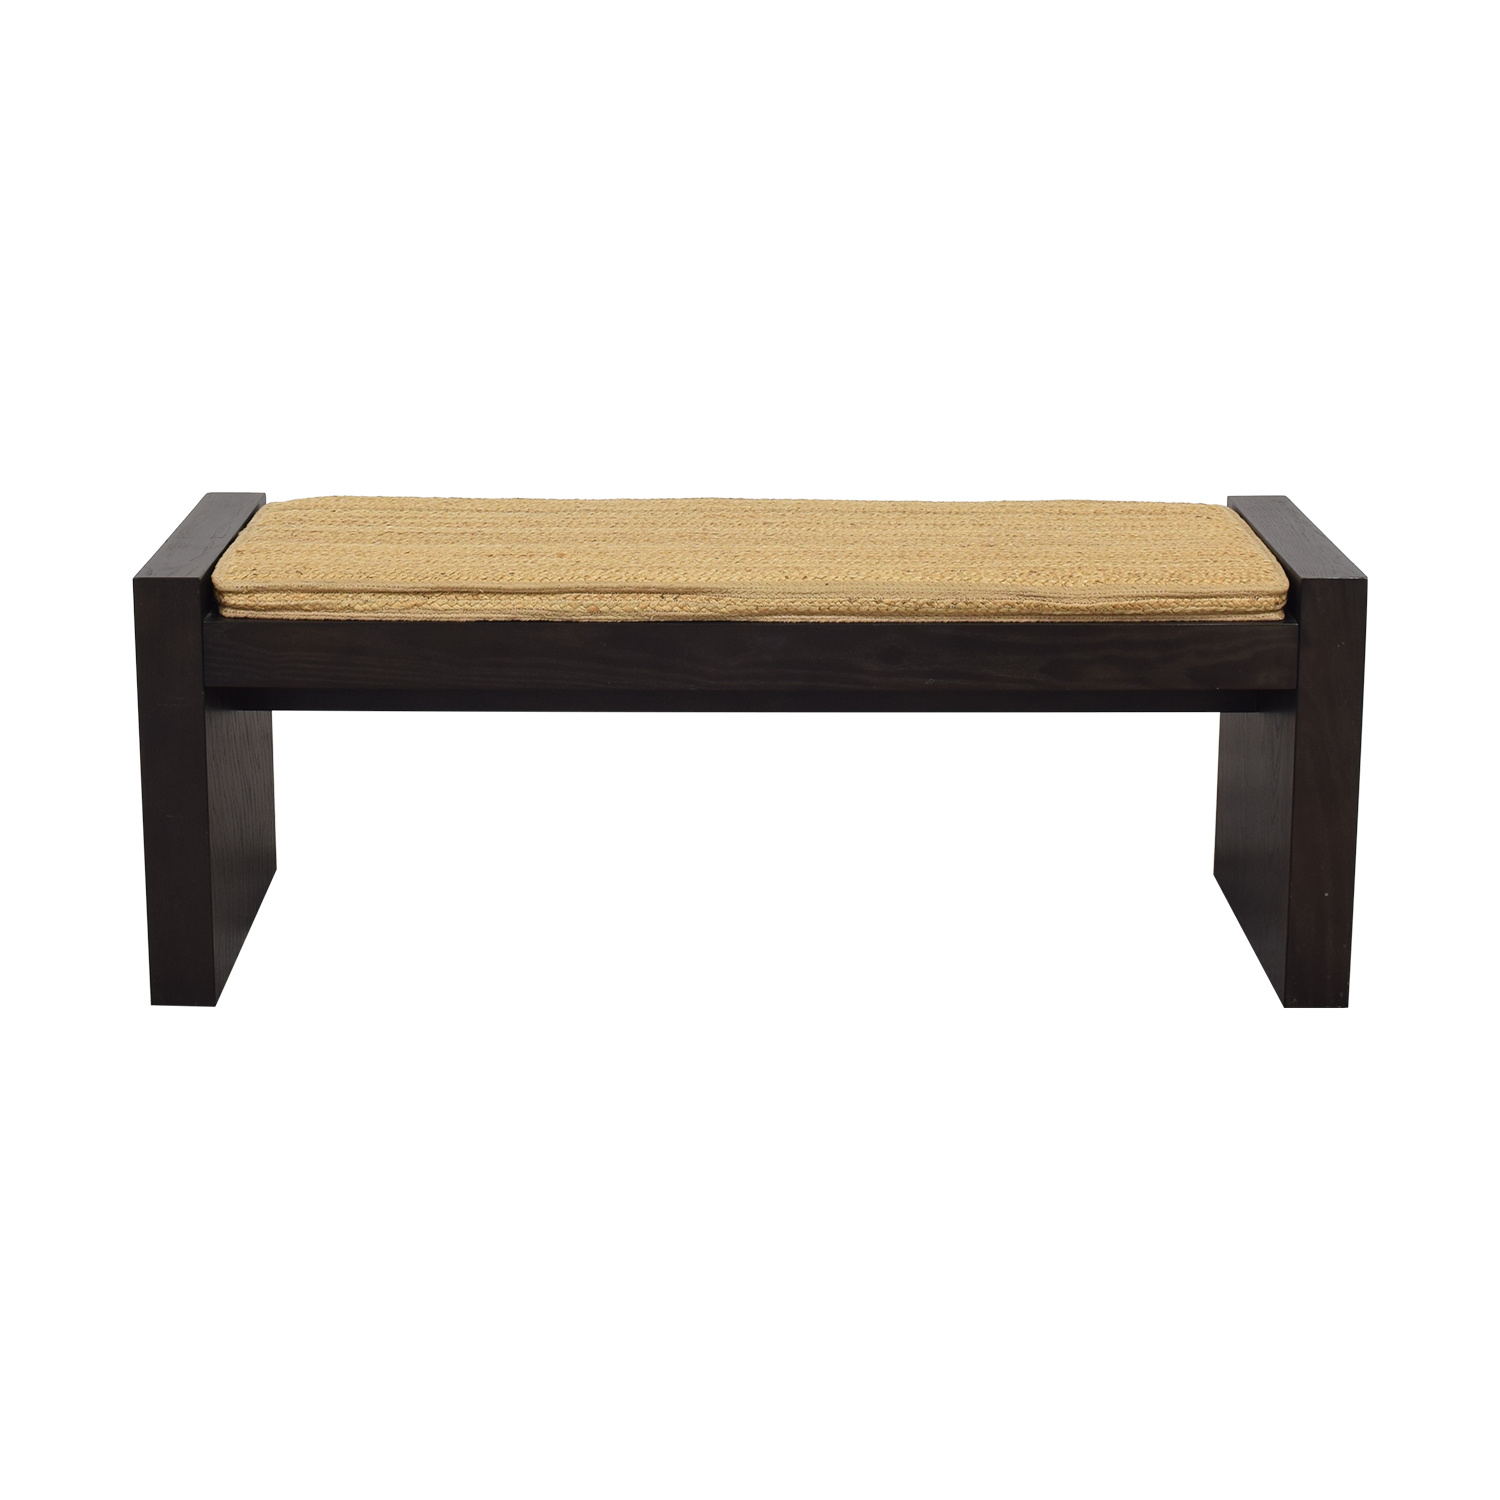 buy West Elm Terra Bench Cushion Bench West Elm Chairs